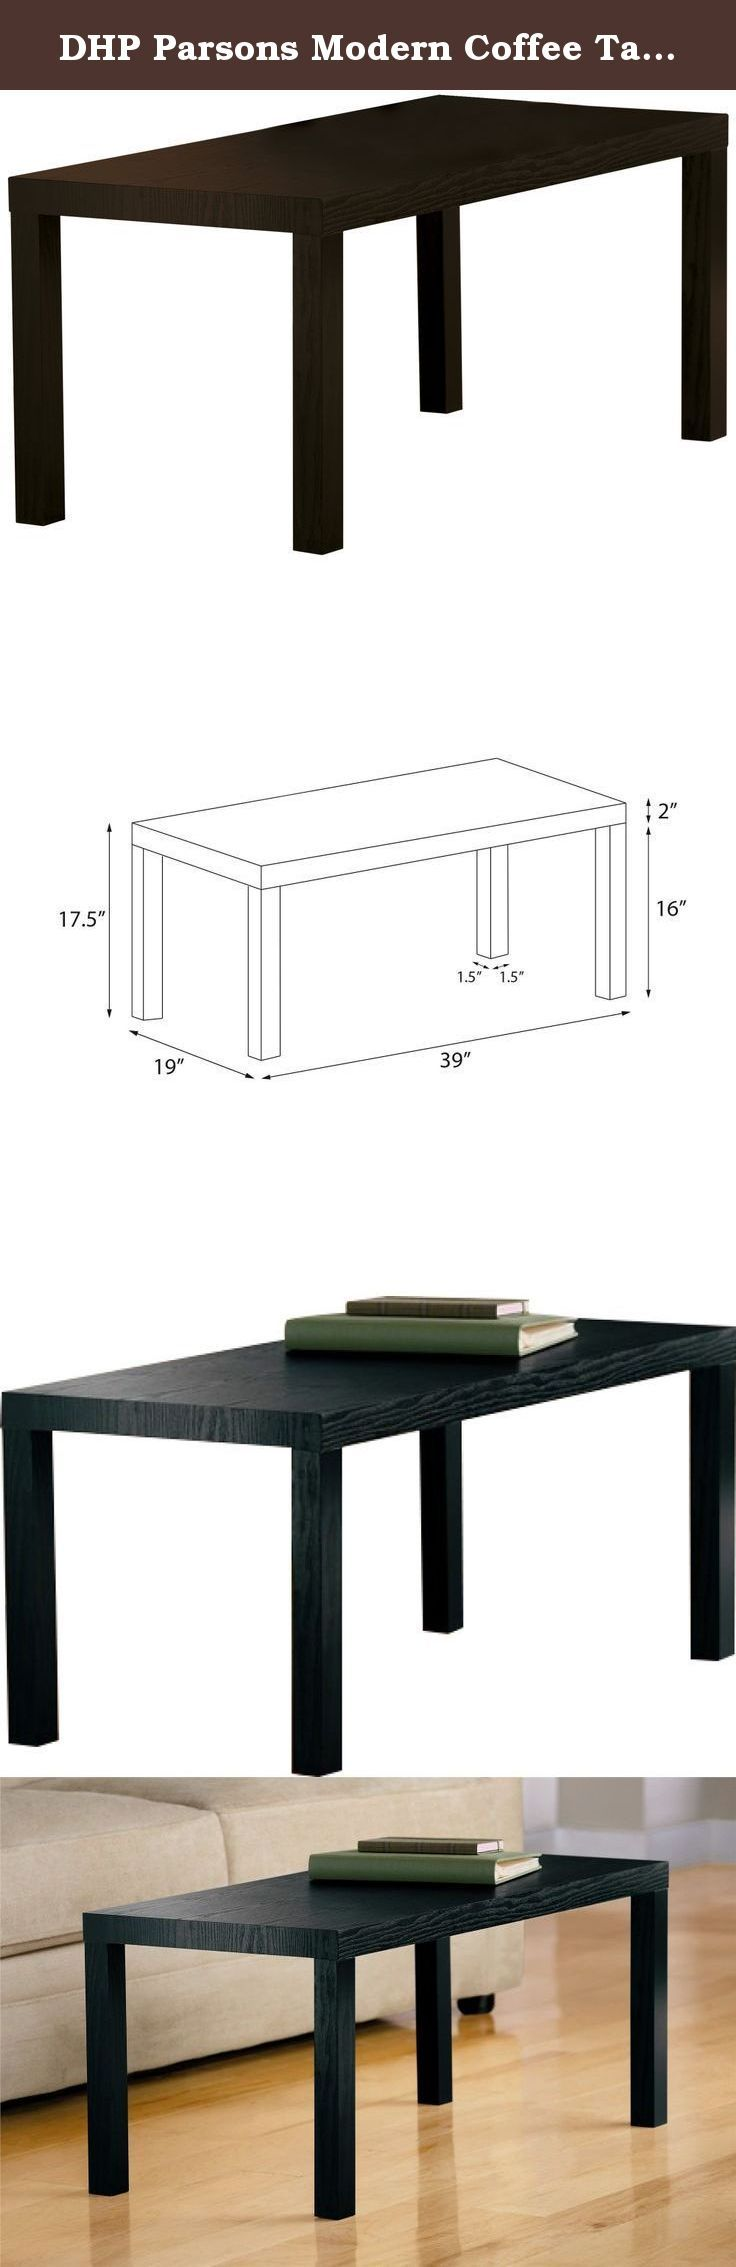 DHP Parsons Modern Coffee Table, Black Wood Grain. DHP's Parsons Coffee Table, available in either espresso, rich black or warm natural finish, is a perfect accessory to complement any room. Despite having a small price tag, the coffee table has very big benefits. Perfect for dorm rooms, apartments or any living room, with its Hollow Core Construction, the table is incredibly lightweight, making it easy to move around the room and house. And yet, its MDF laminate finish makes its…